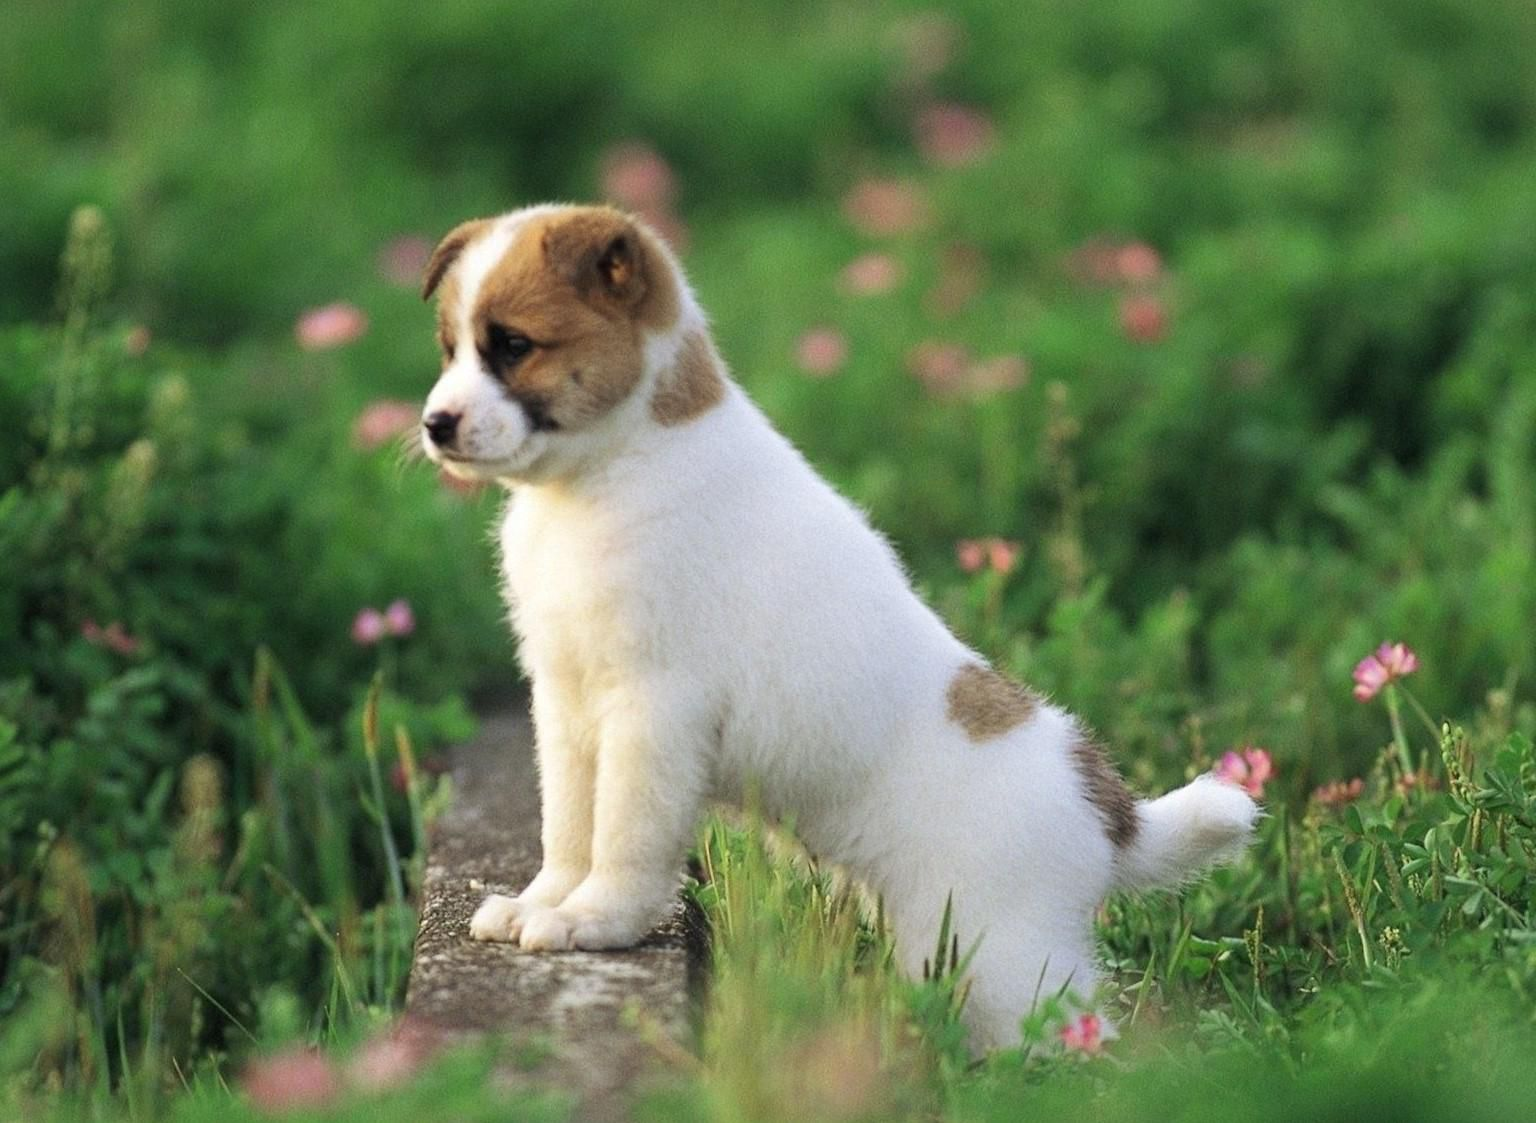 Dogs Have A Way Of Finding People Who Need Them And Filling An Emptiness They Didnt Know How They Had Https Ift Tt Pretty Dogs Cute Puppy Wallpaper Baby Dogs